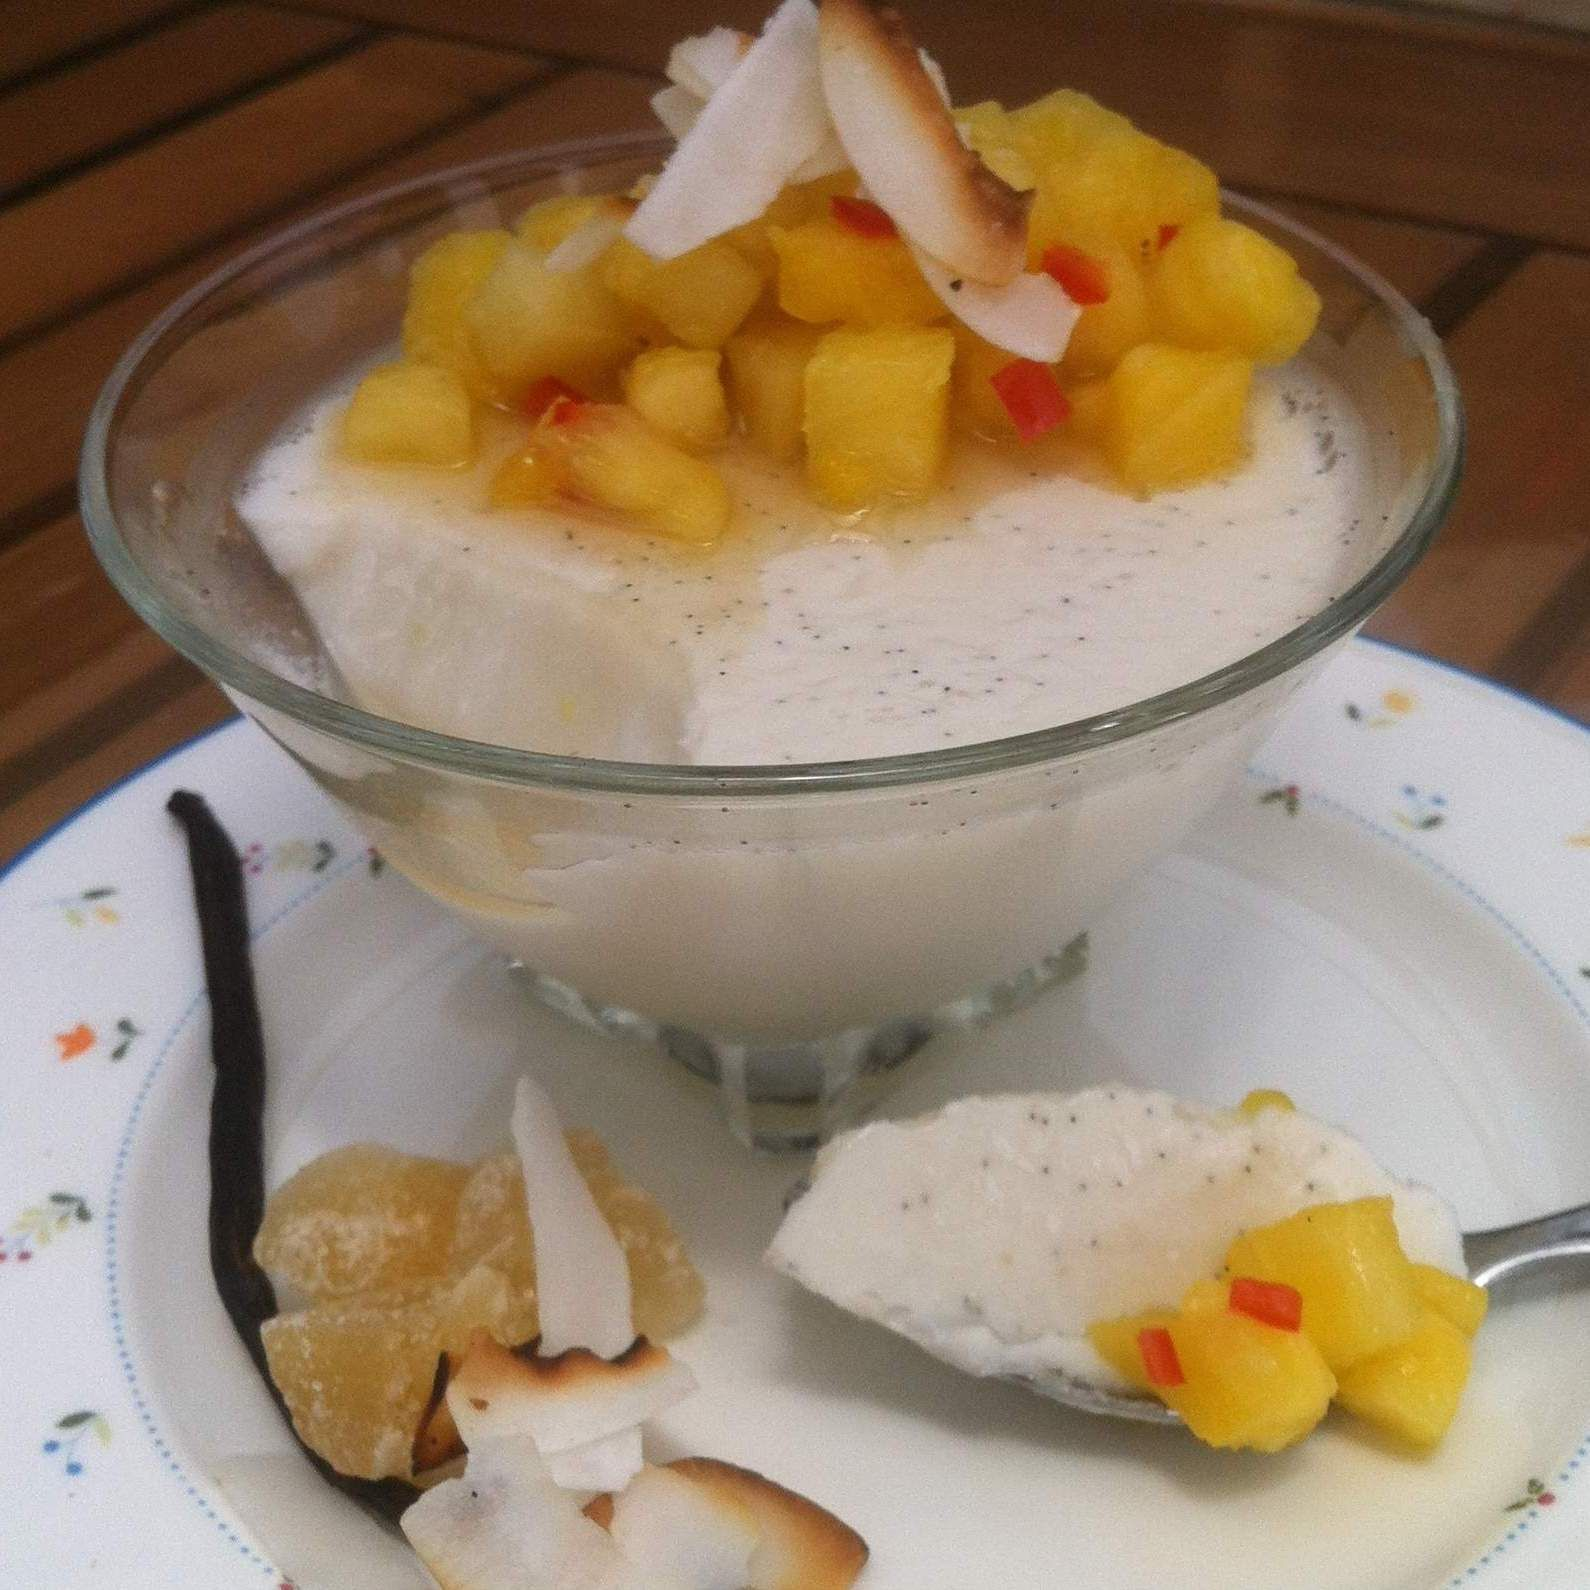 Recipe coconut pana cotta with pineapple salsa from the bbc good recipe coconut pana cotta with pineapple salsa from the bbc good food magazine by arianne recipe of category desserts sweets forumfinder Image collections